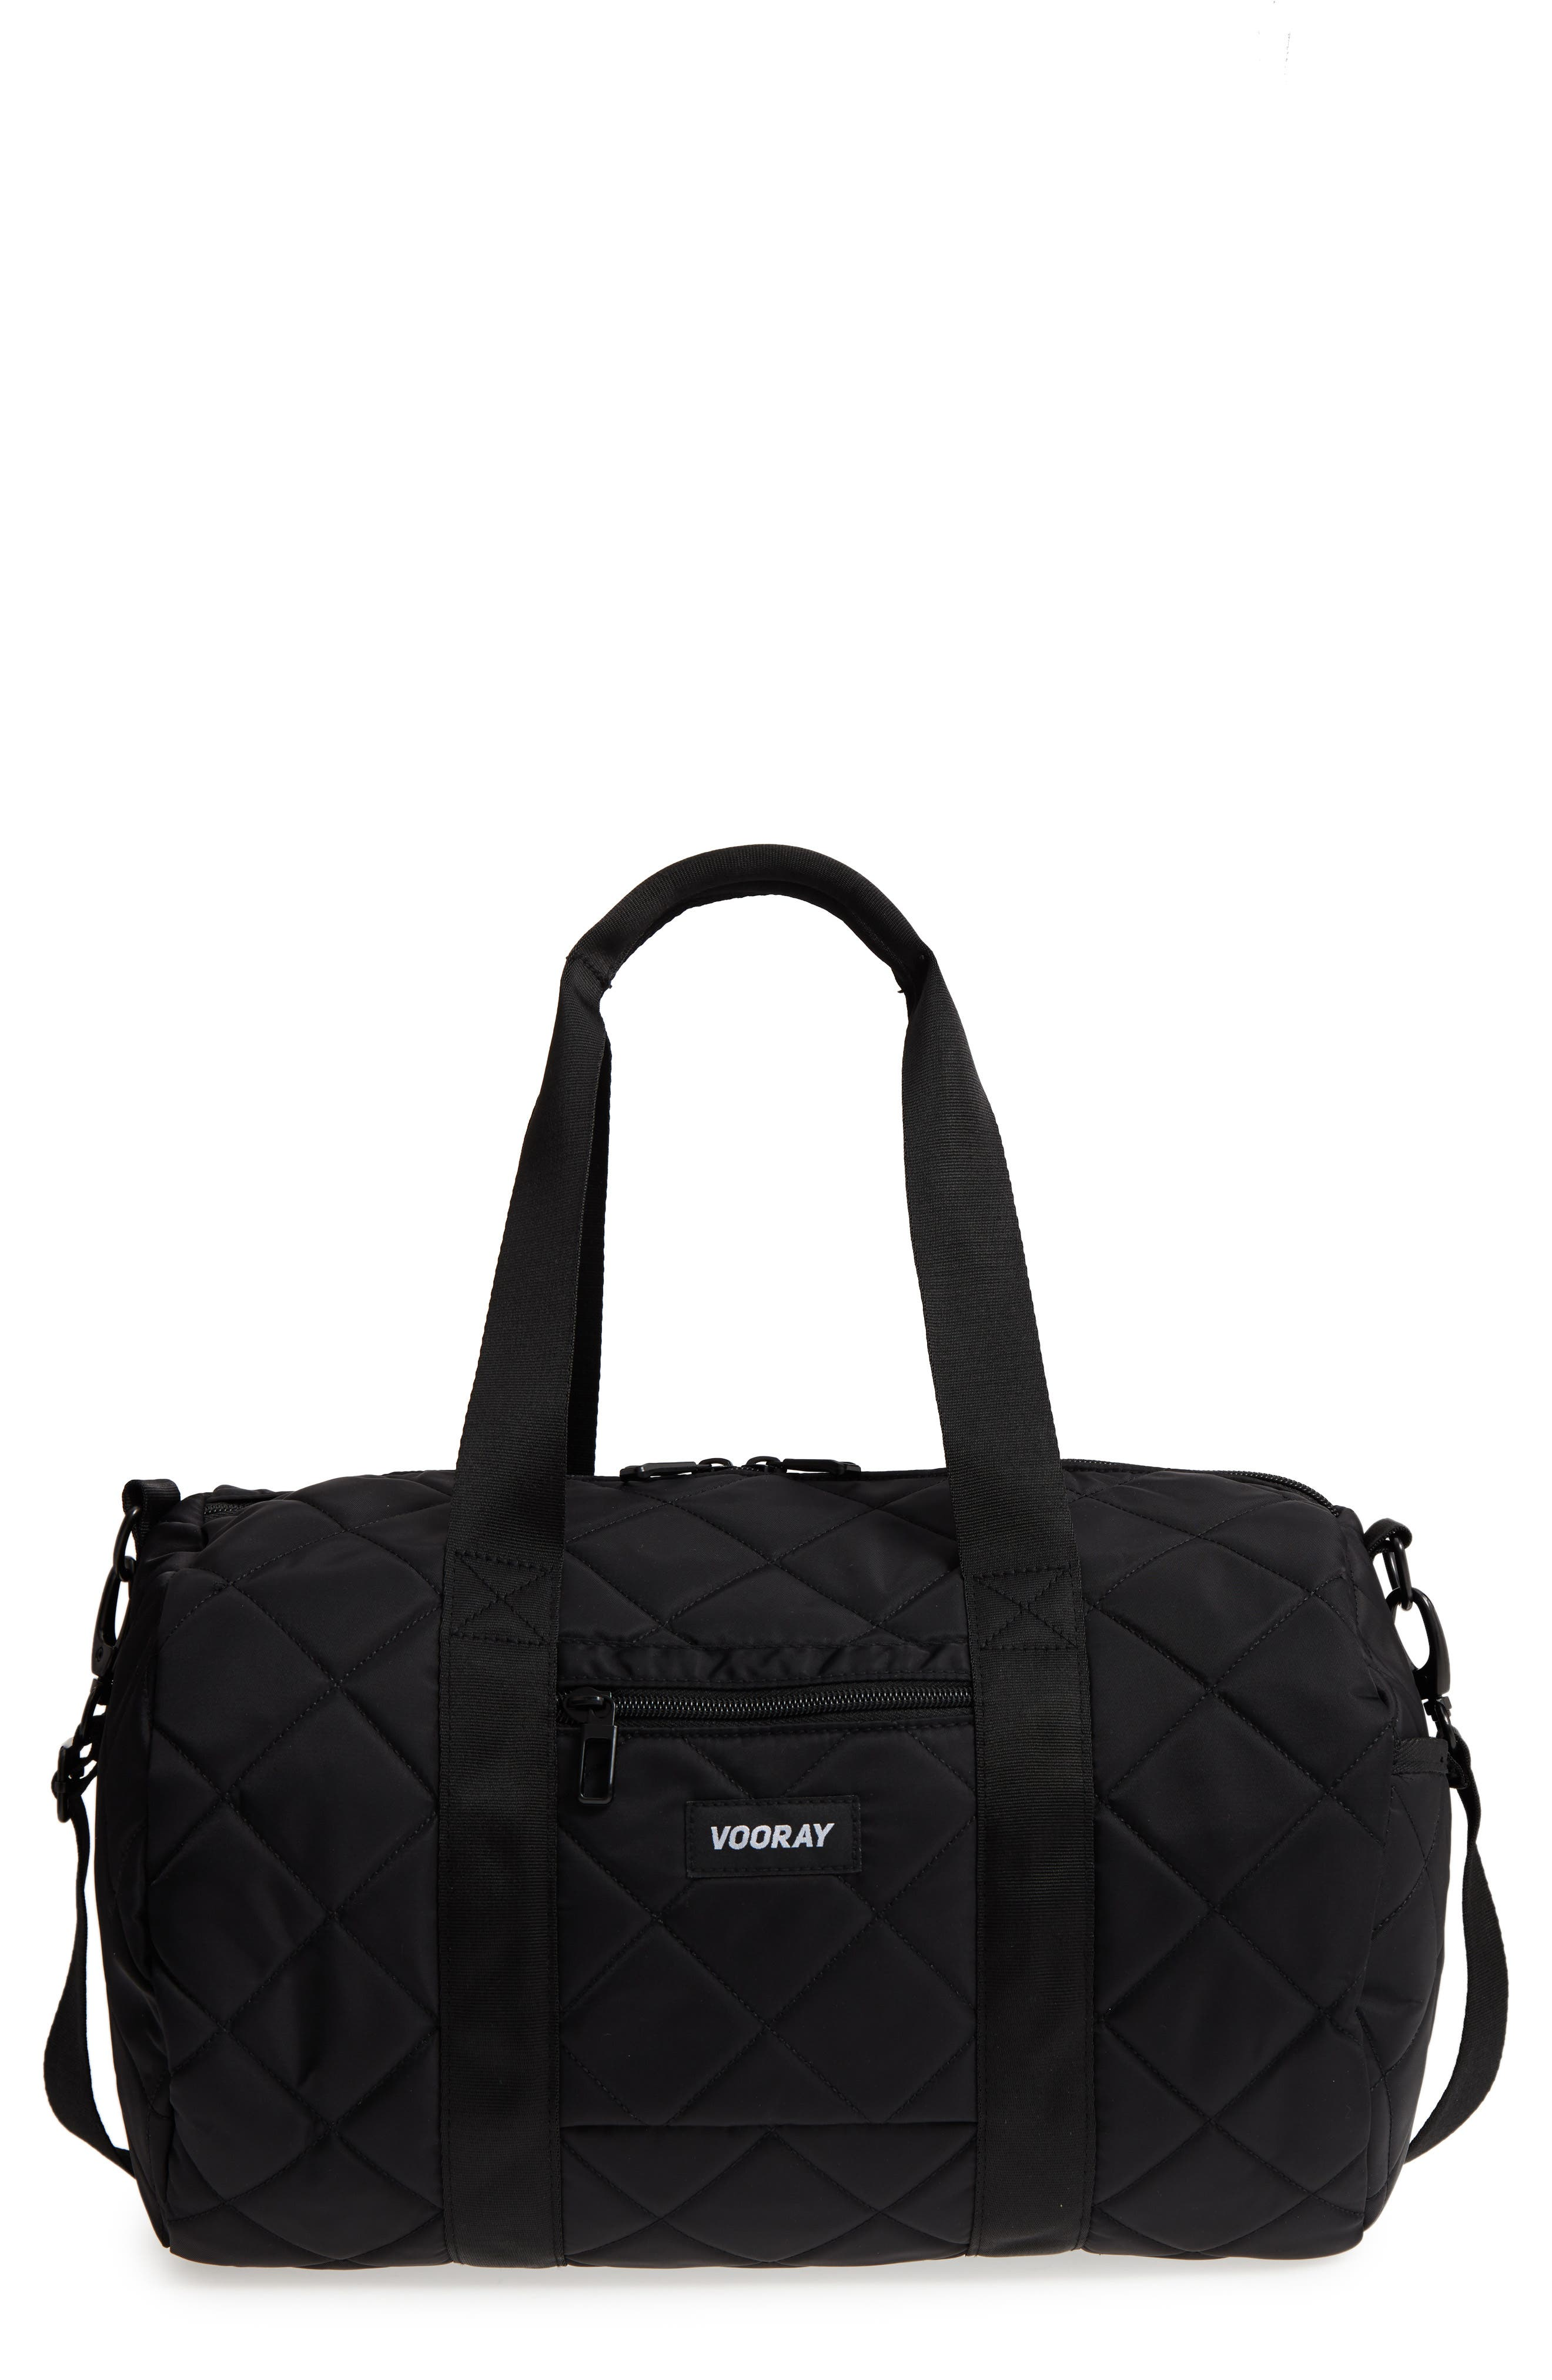 Roadie Small Duffel Bag,                         Main,                         color, Quilted Black Nylon